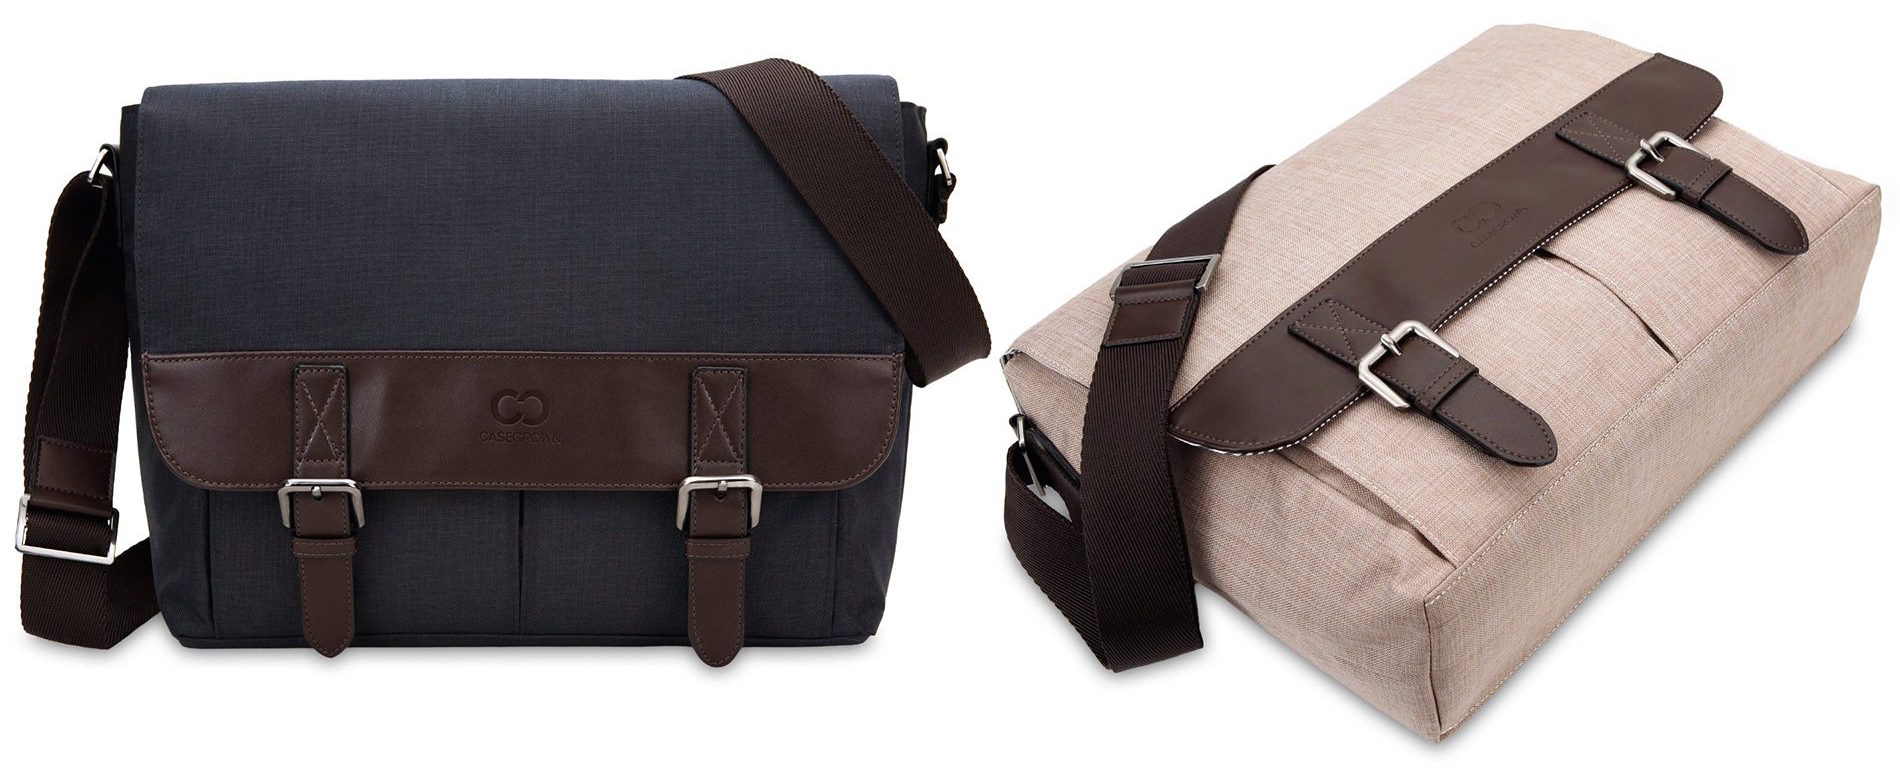 casecrown-messenger-bags